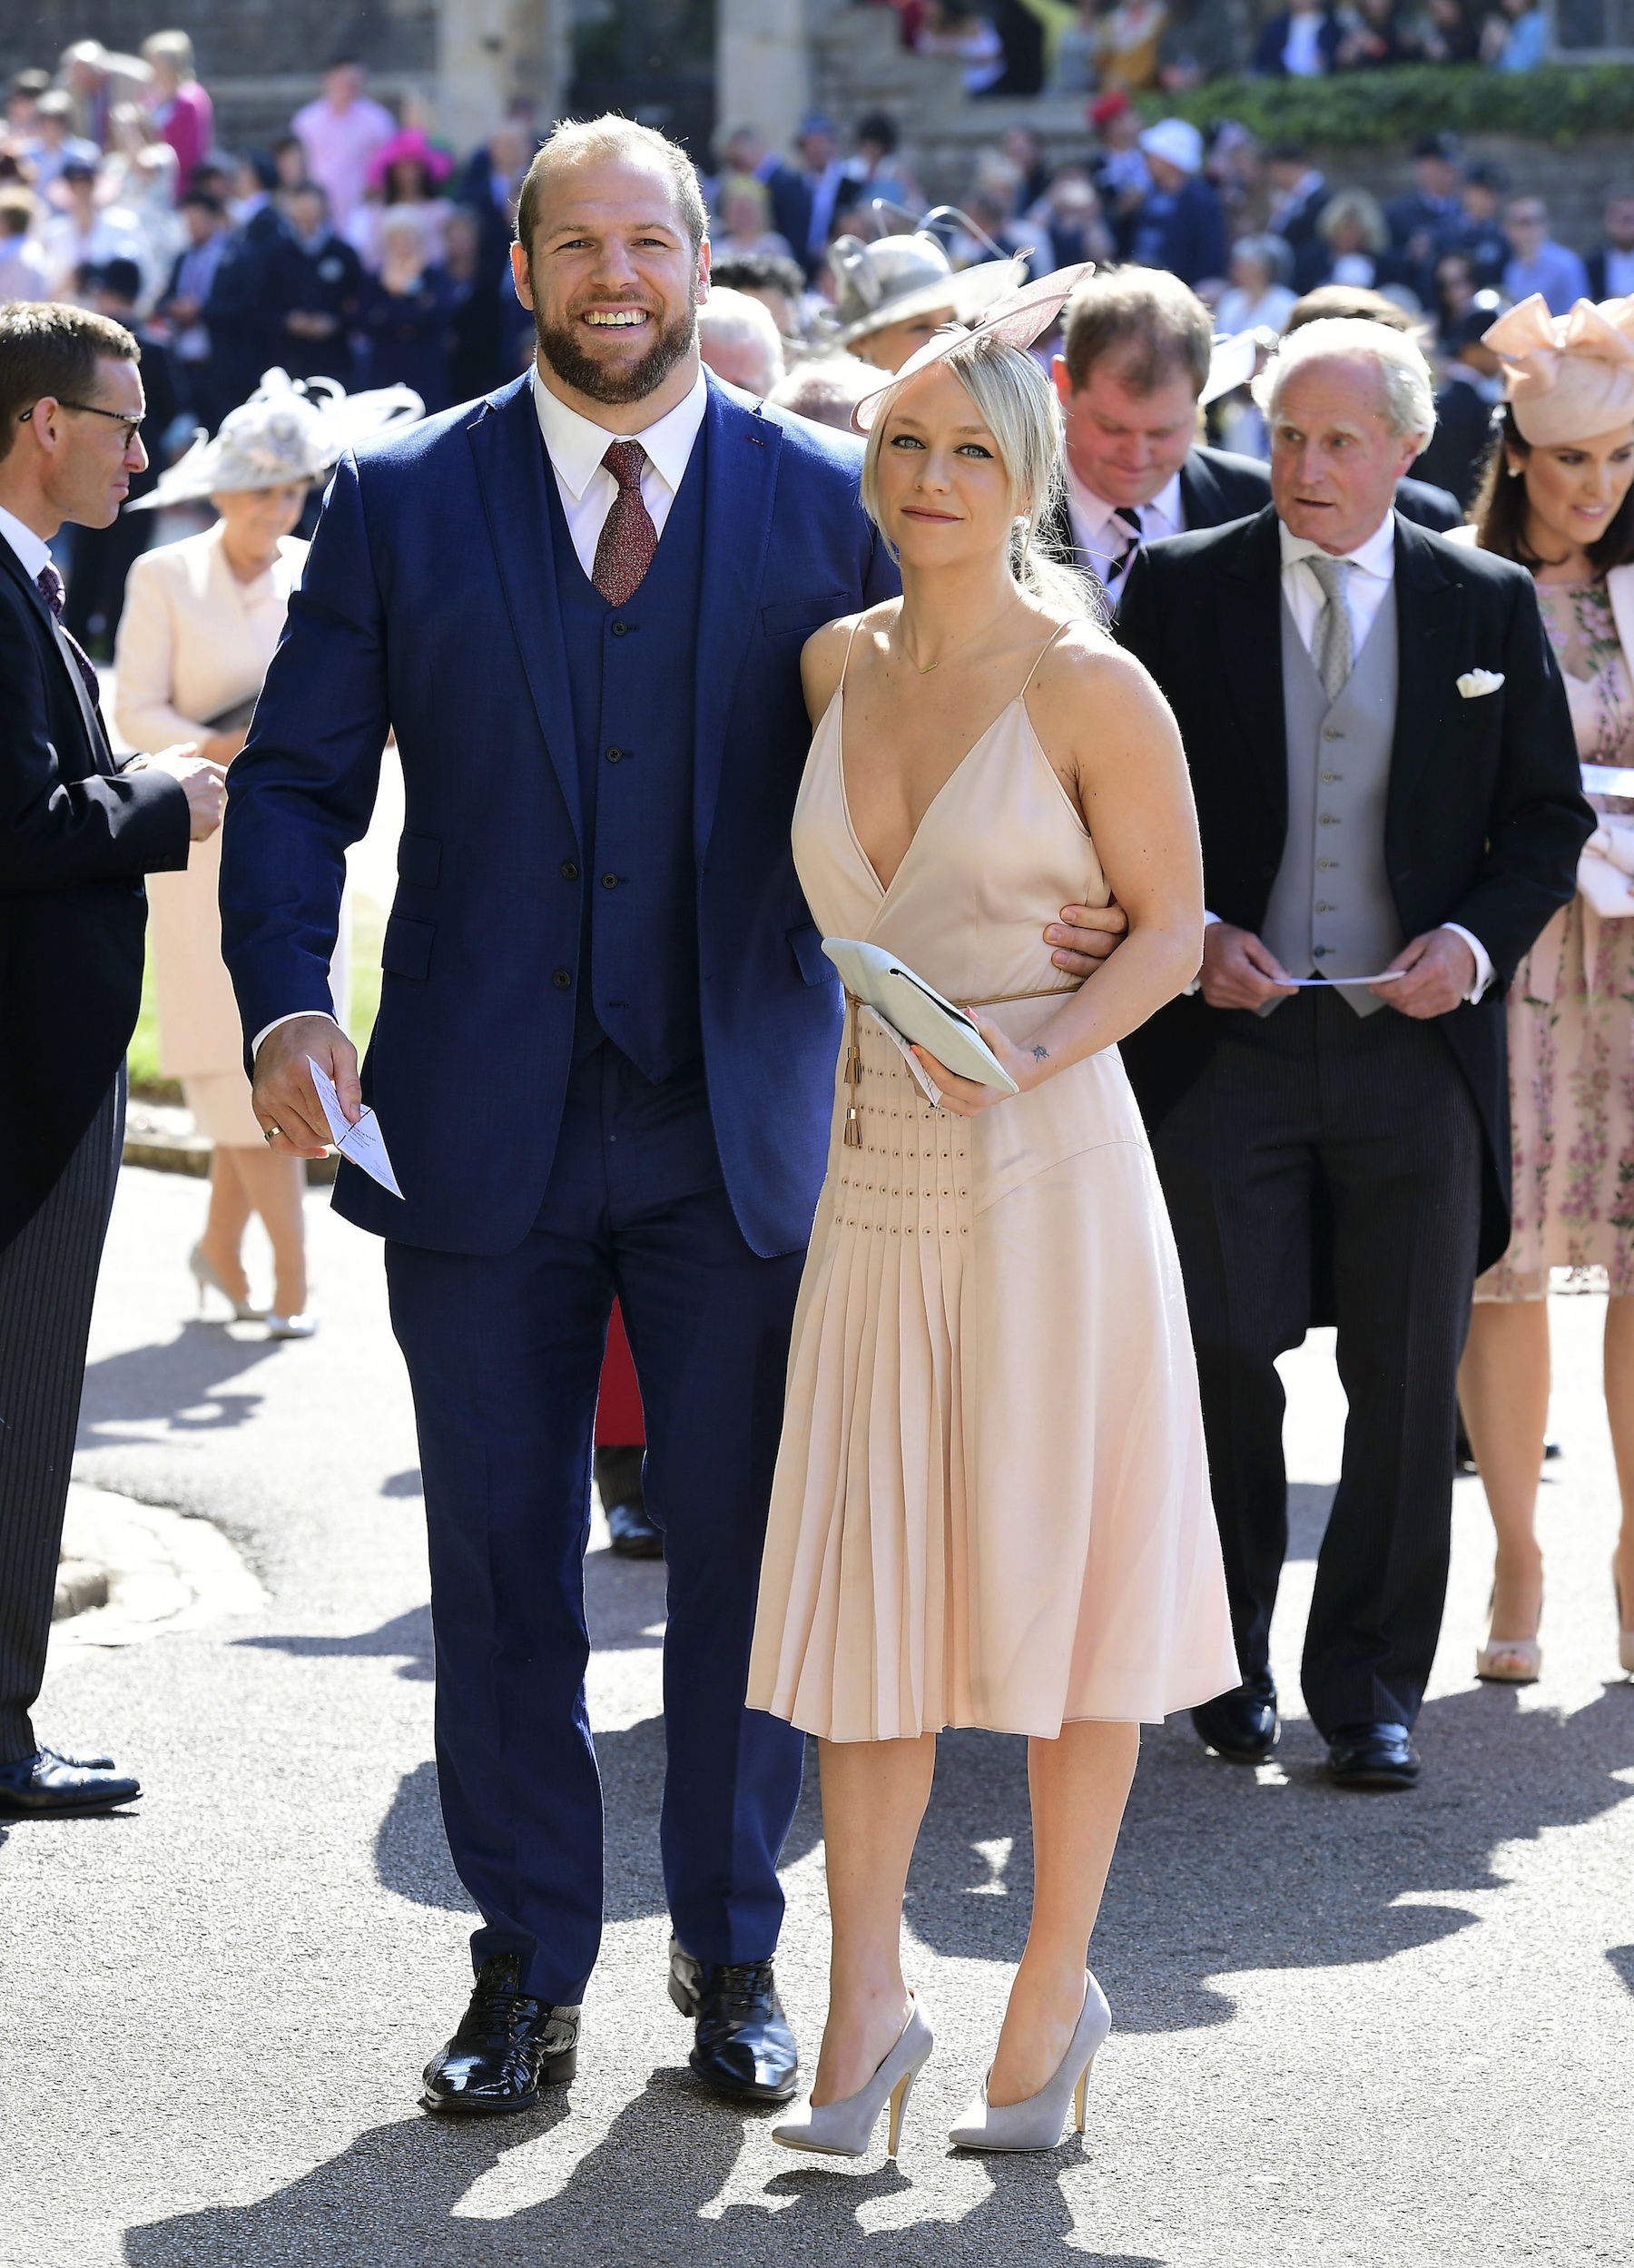 <div class='meta'><div class='origin-logo' data-origin='AP'></div><span class='caption-text' data-credit='Ian West/PA Wire'>James Haskell and Chloe Madeley arrives at St George's Chapel at Windsor Castle for the wedding of Meghan Markle and Prince Harry.</span></div>